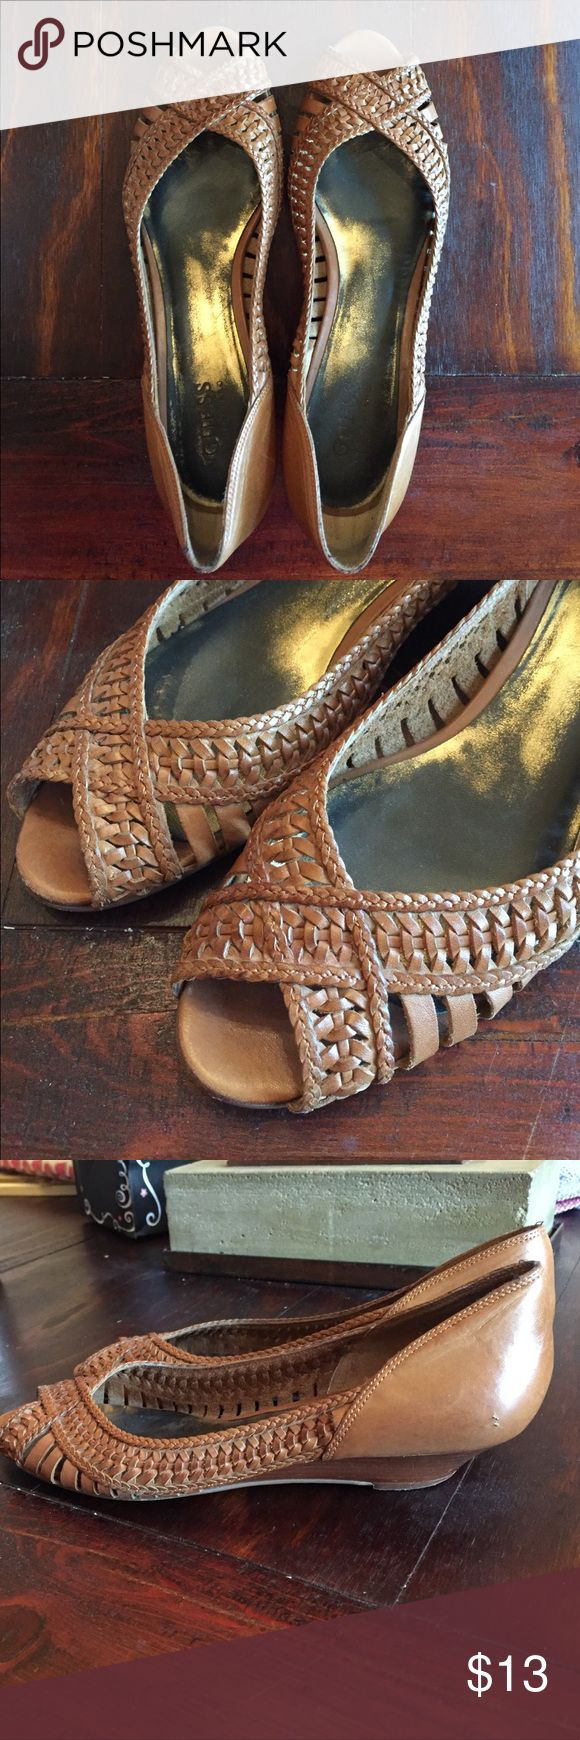 Guess by Marciano braided leather kitten heels Guess by Marciano light brown braided leather kitten heels. Size 8. Fair used condition. Guess by Marciano Shoes Heels